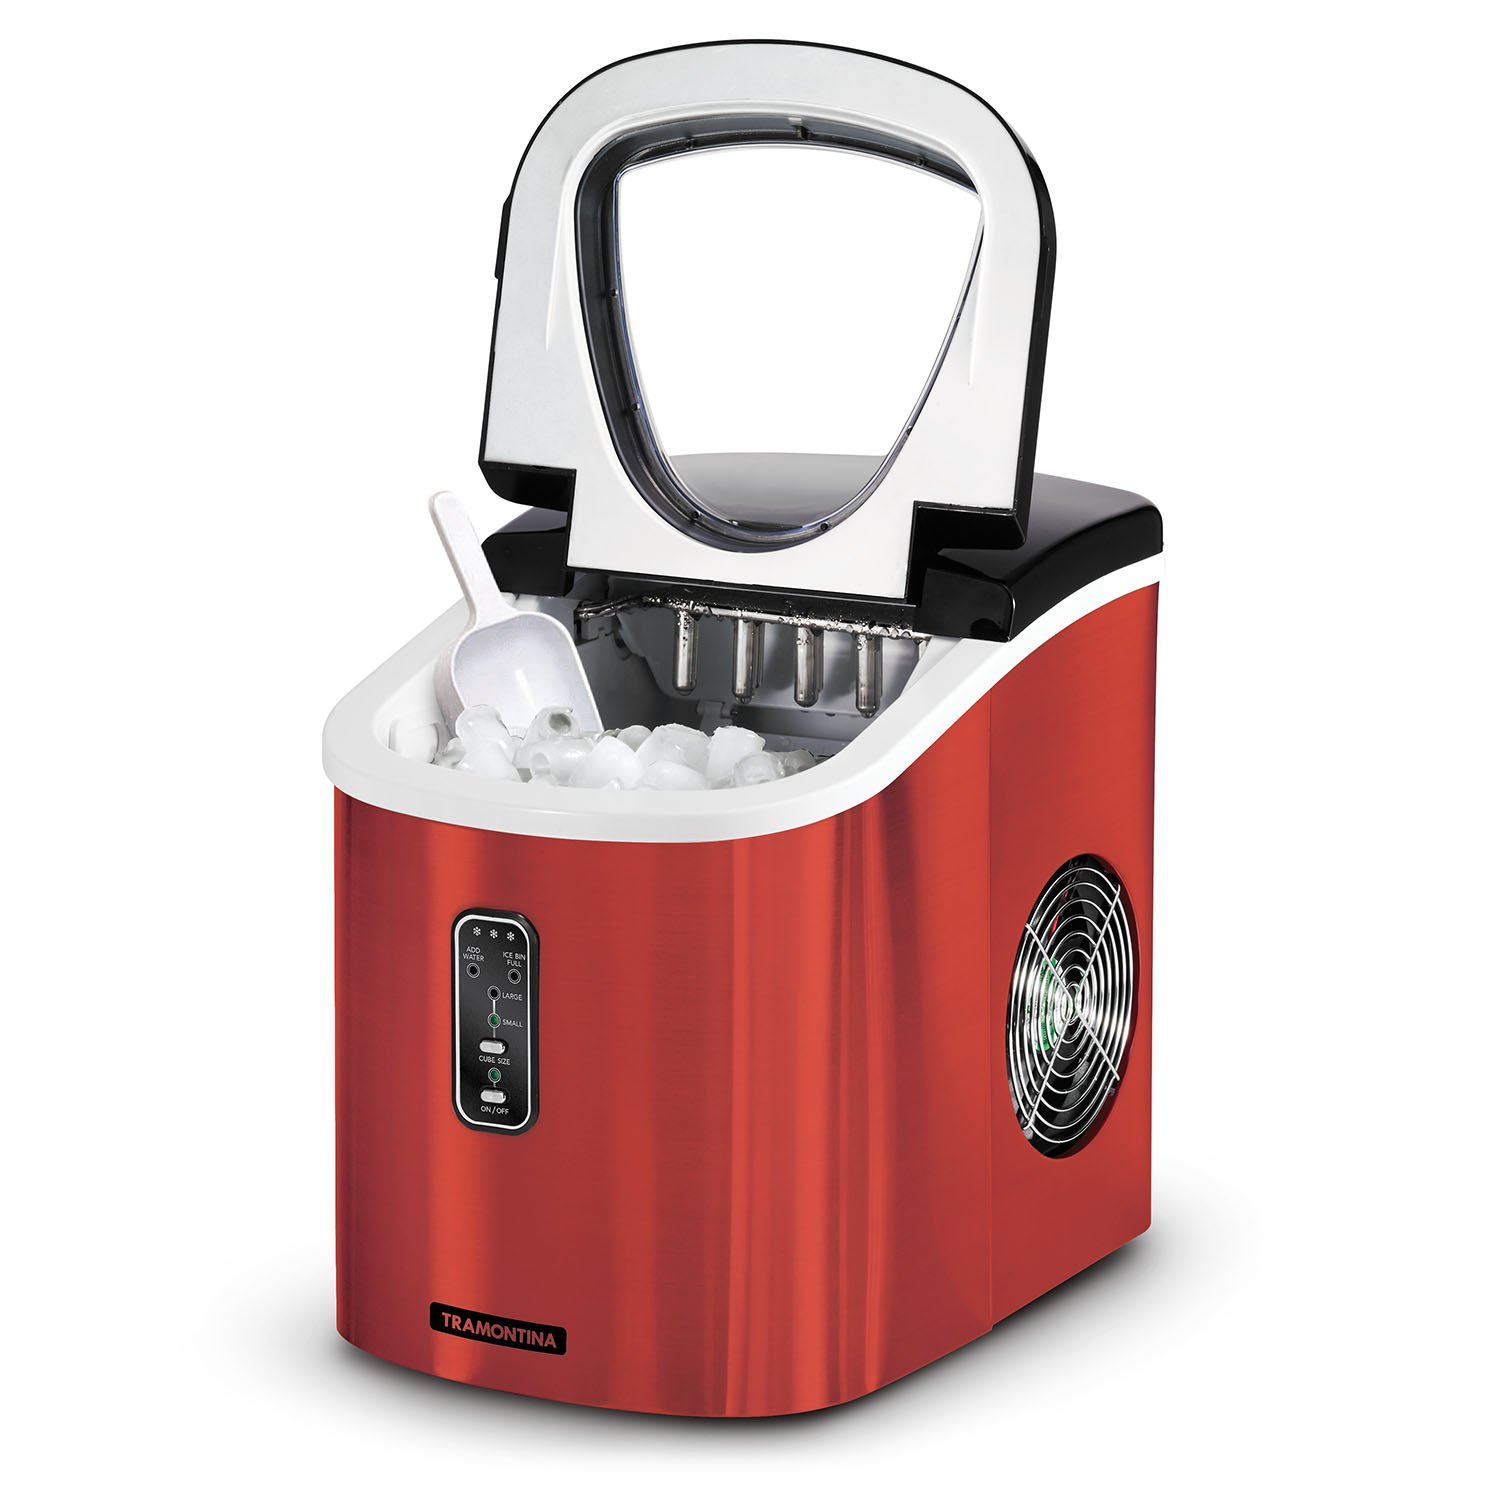 Countertop Ice Maker Walmart Tramontina Stainless Steel Ice Maker Red